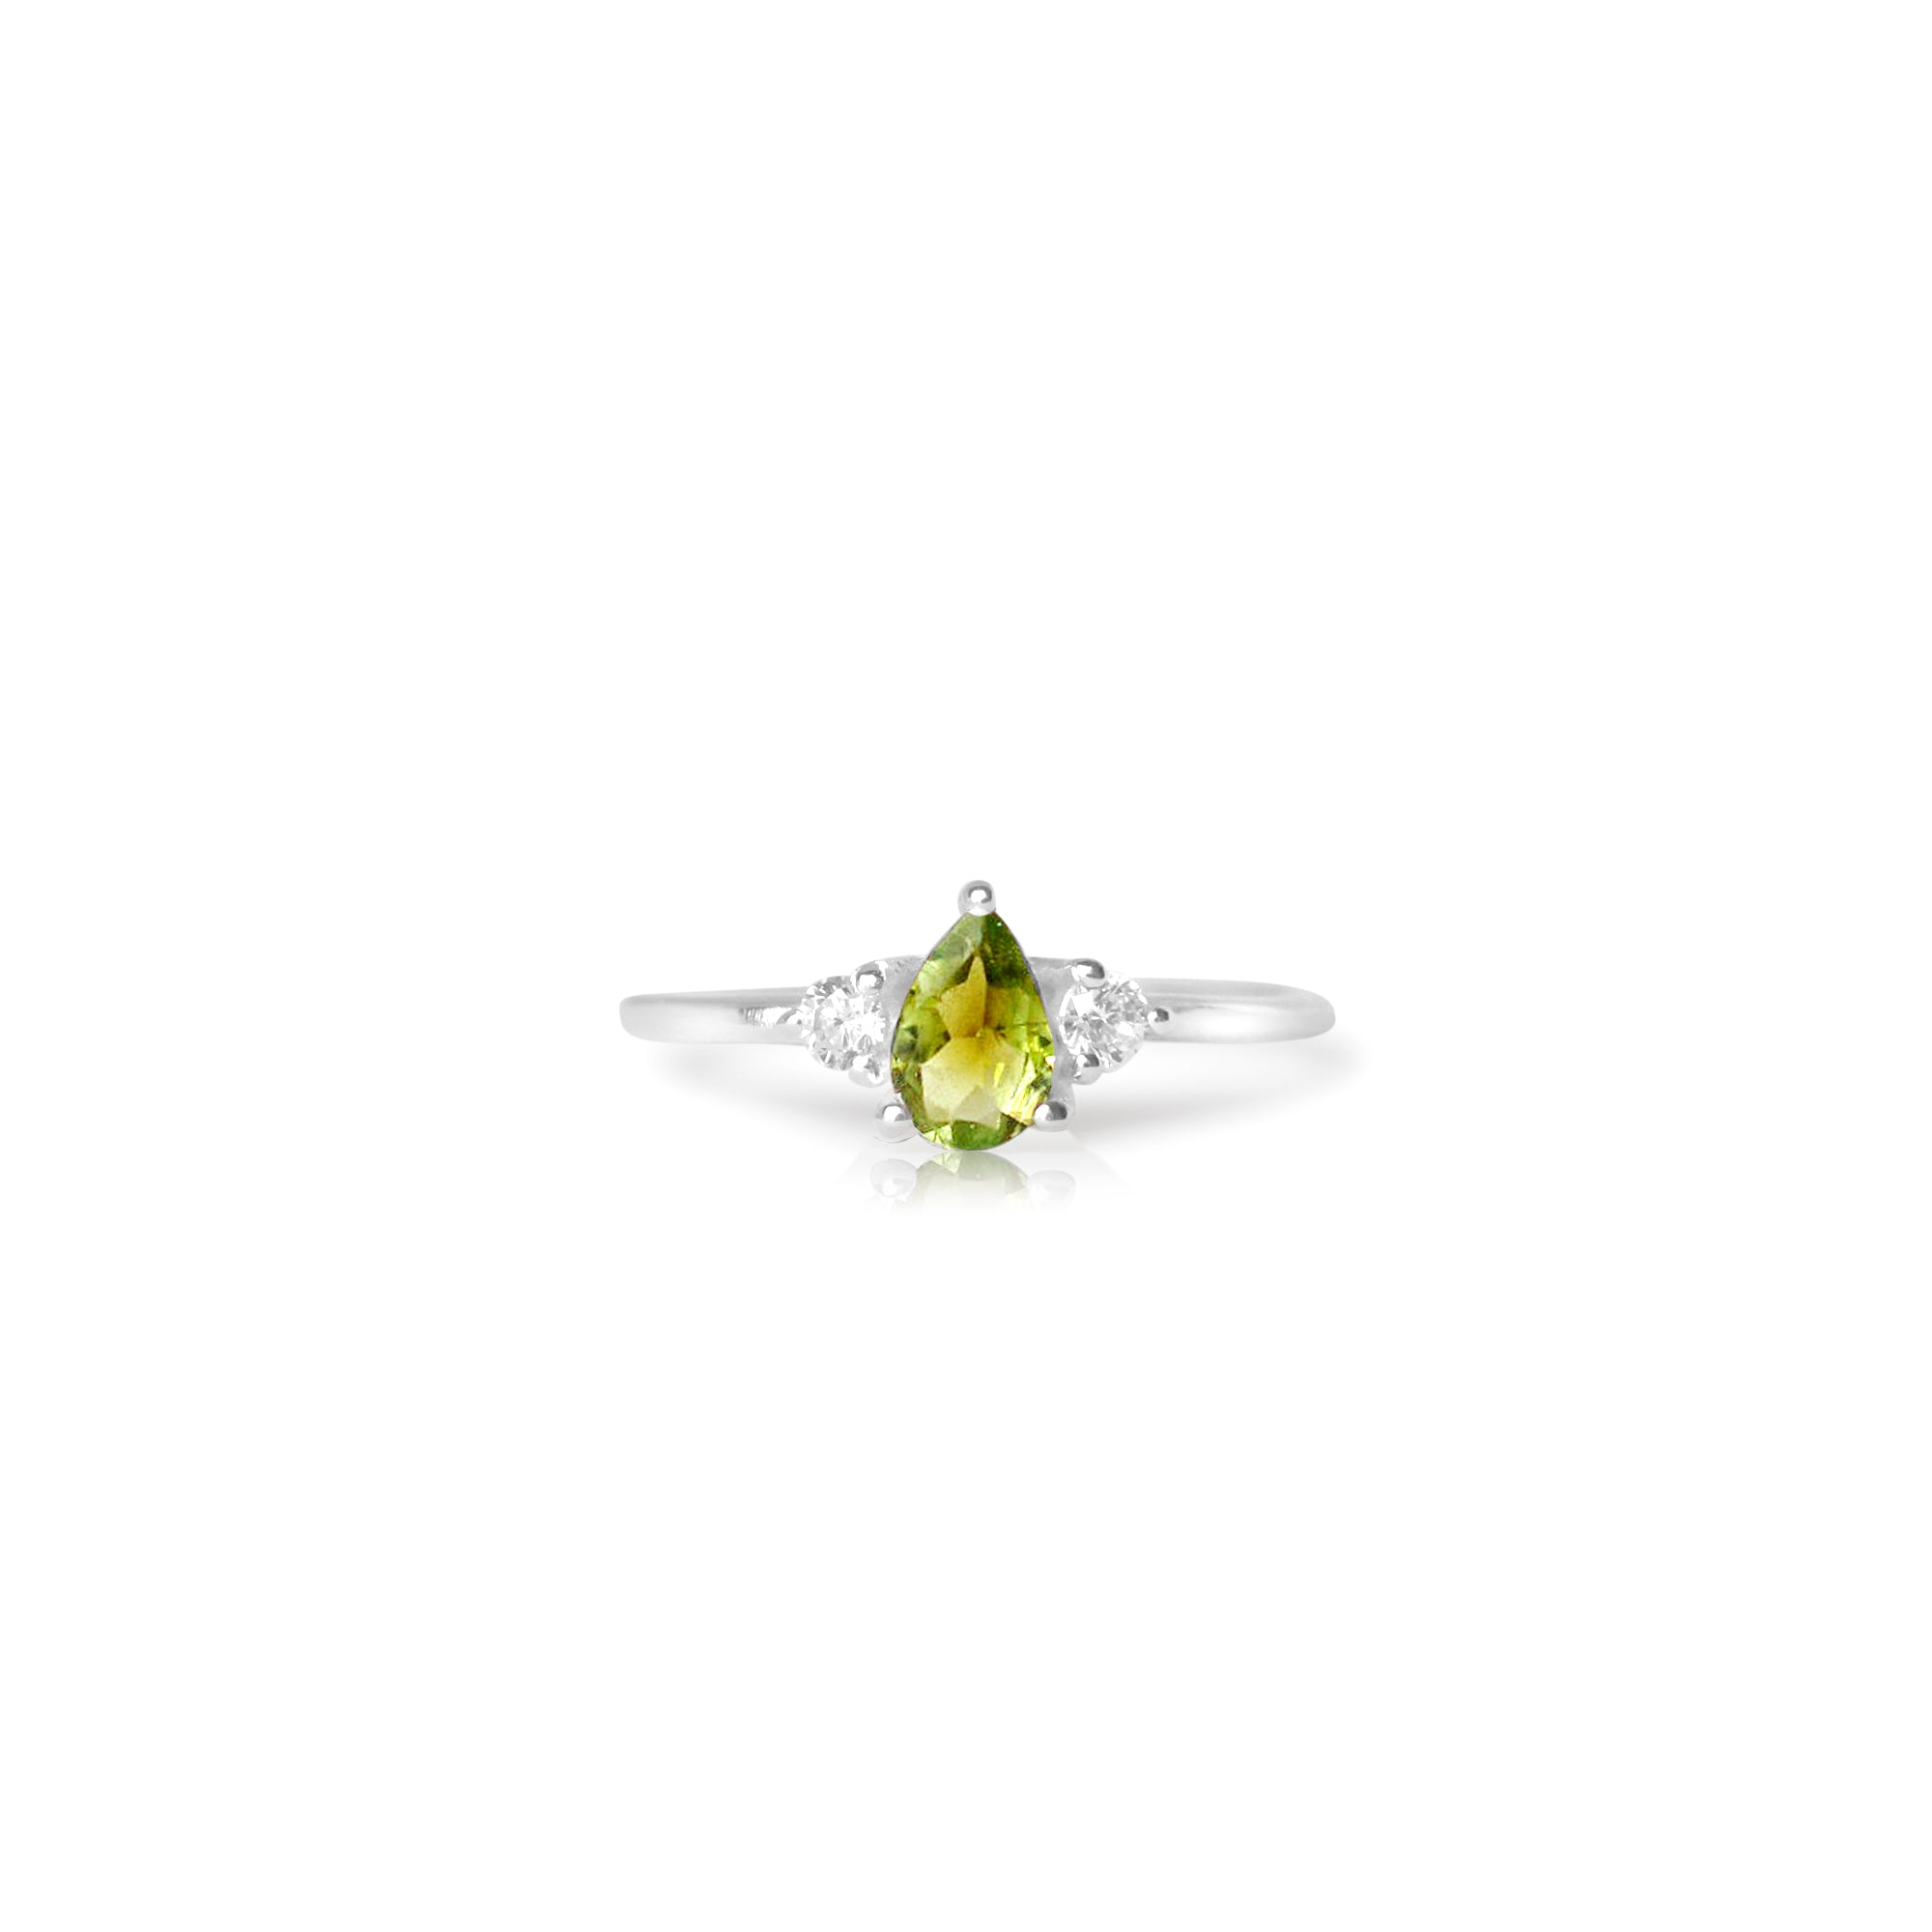 925 Silver Luxe Series Ring - Yumi (Green Tourmaline)